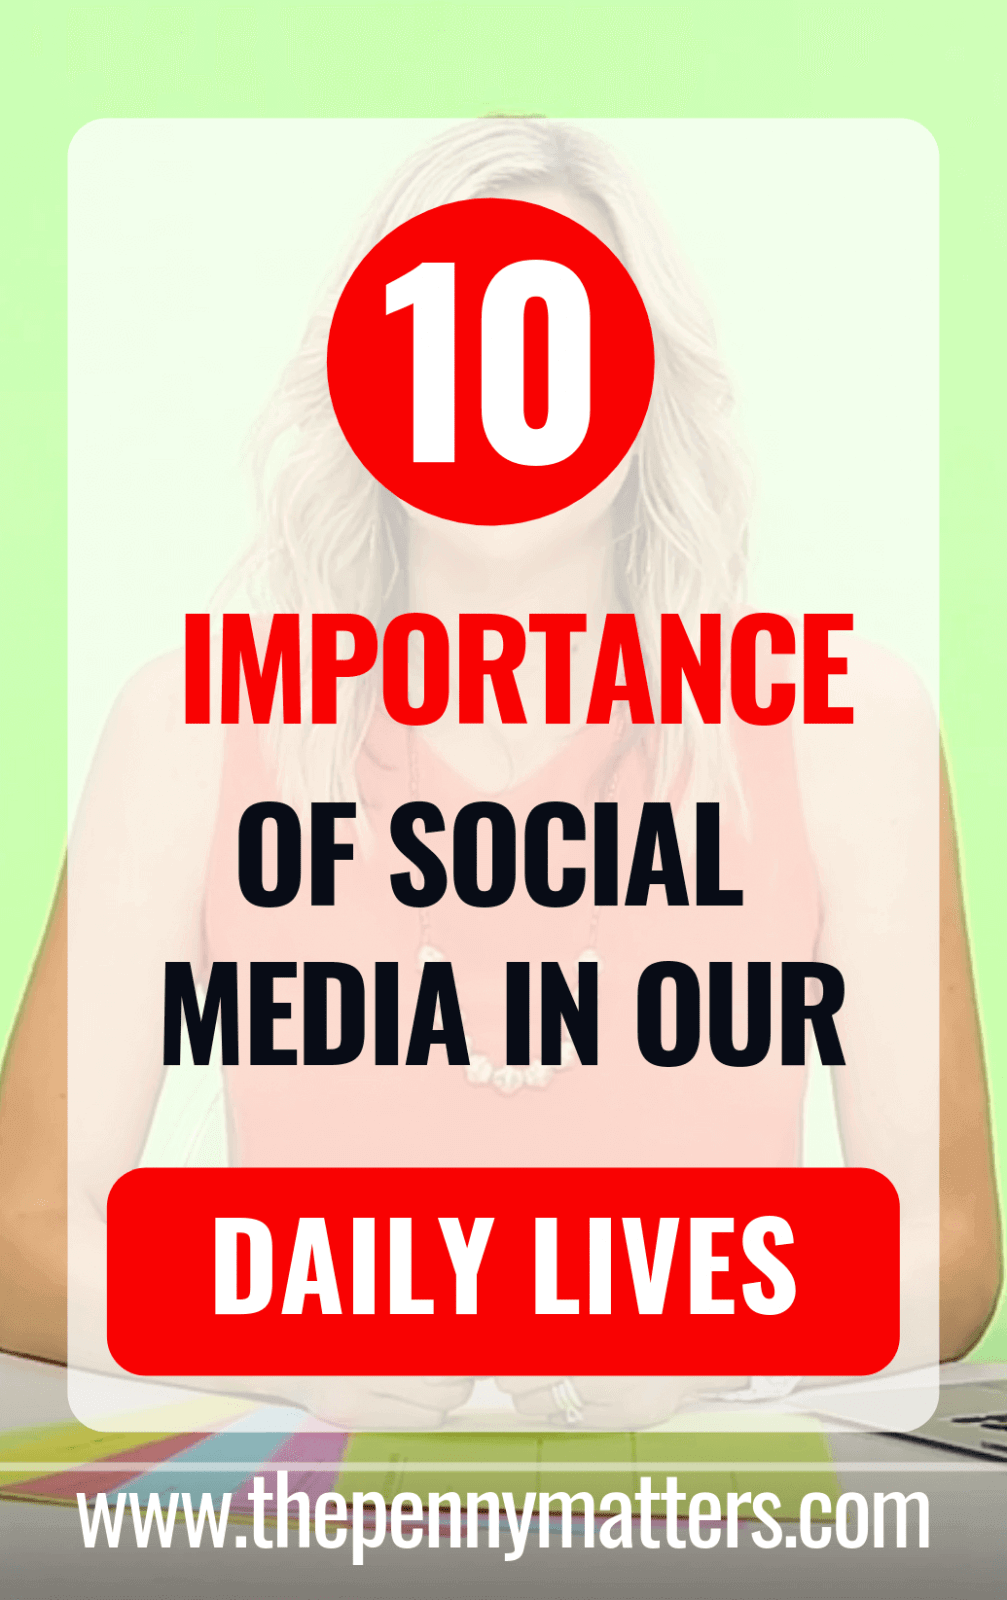 The importance of social media in our daily lives